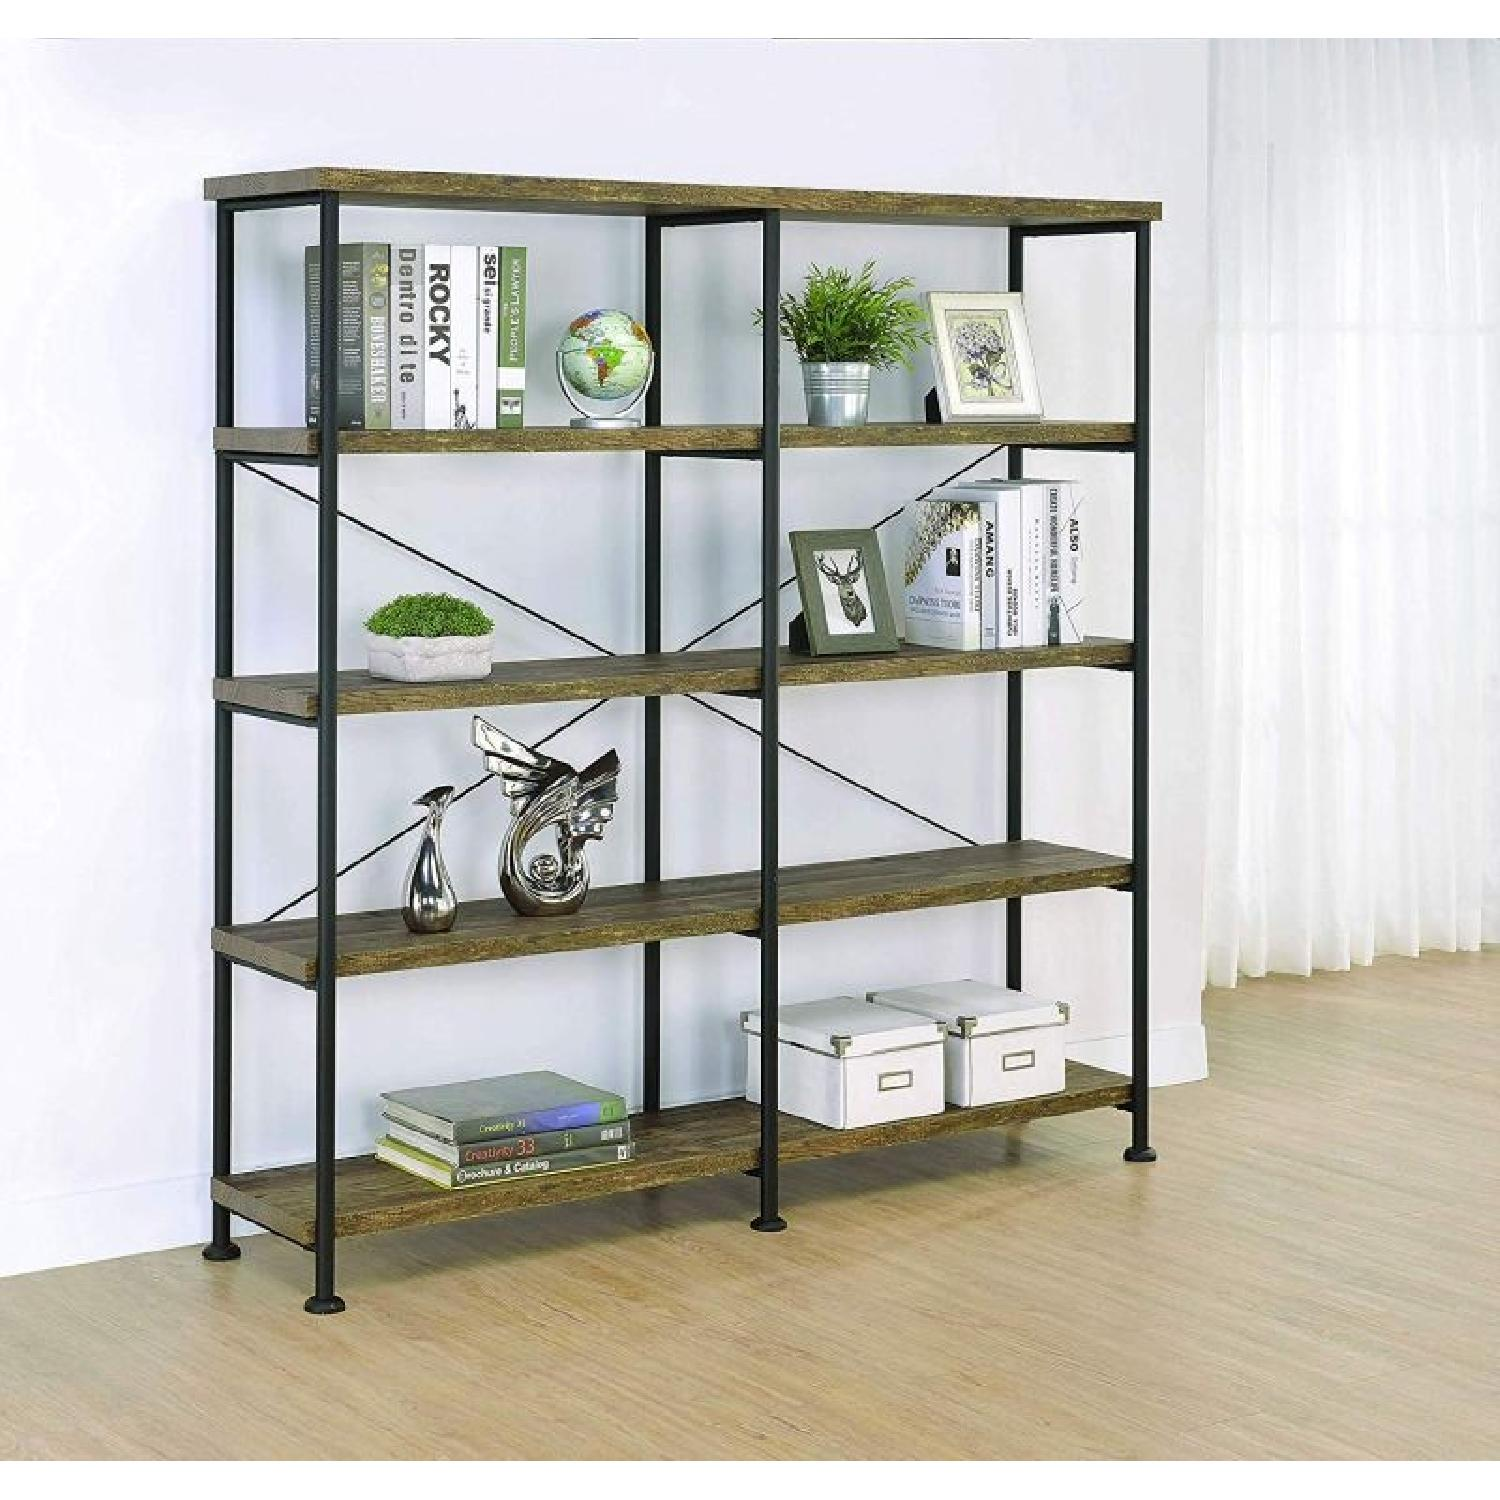 Rustic Oak & Black Bookcase w/ 4 Shelves - image-1